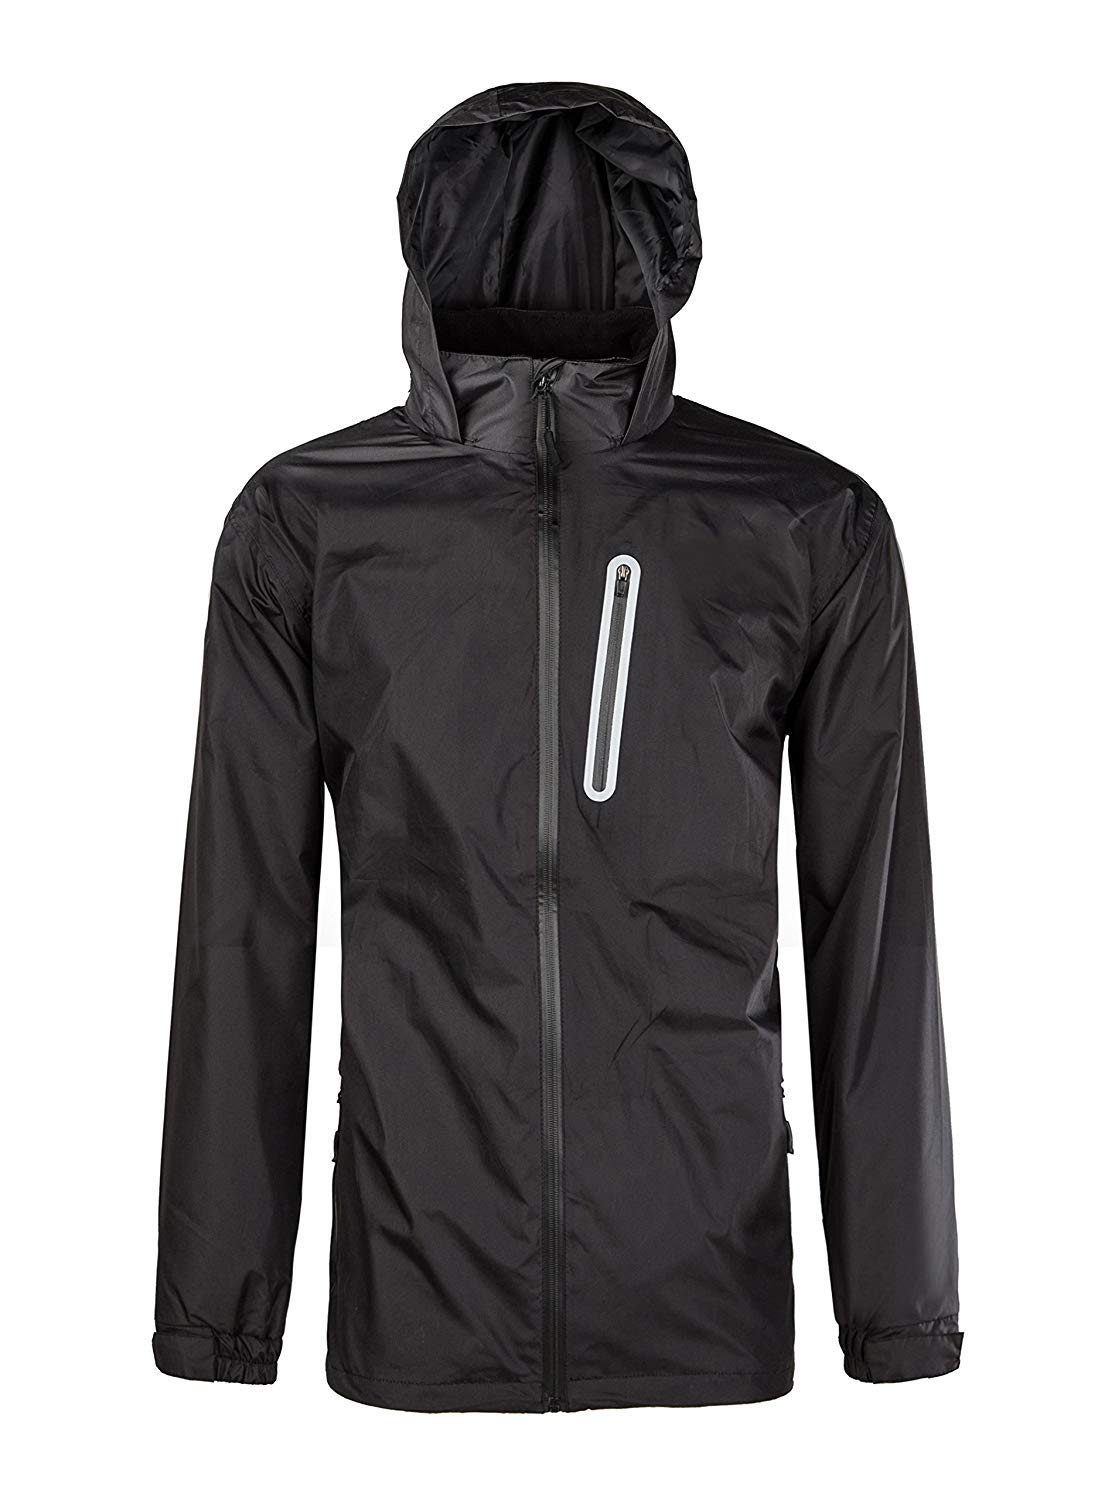 ZITY Men Hiking Light Weight Jacket Hooded Thin Rainwear Windproof Breathable Rain Coat, Black, US XL by Sikedi